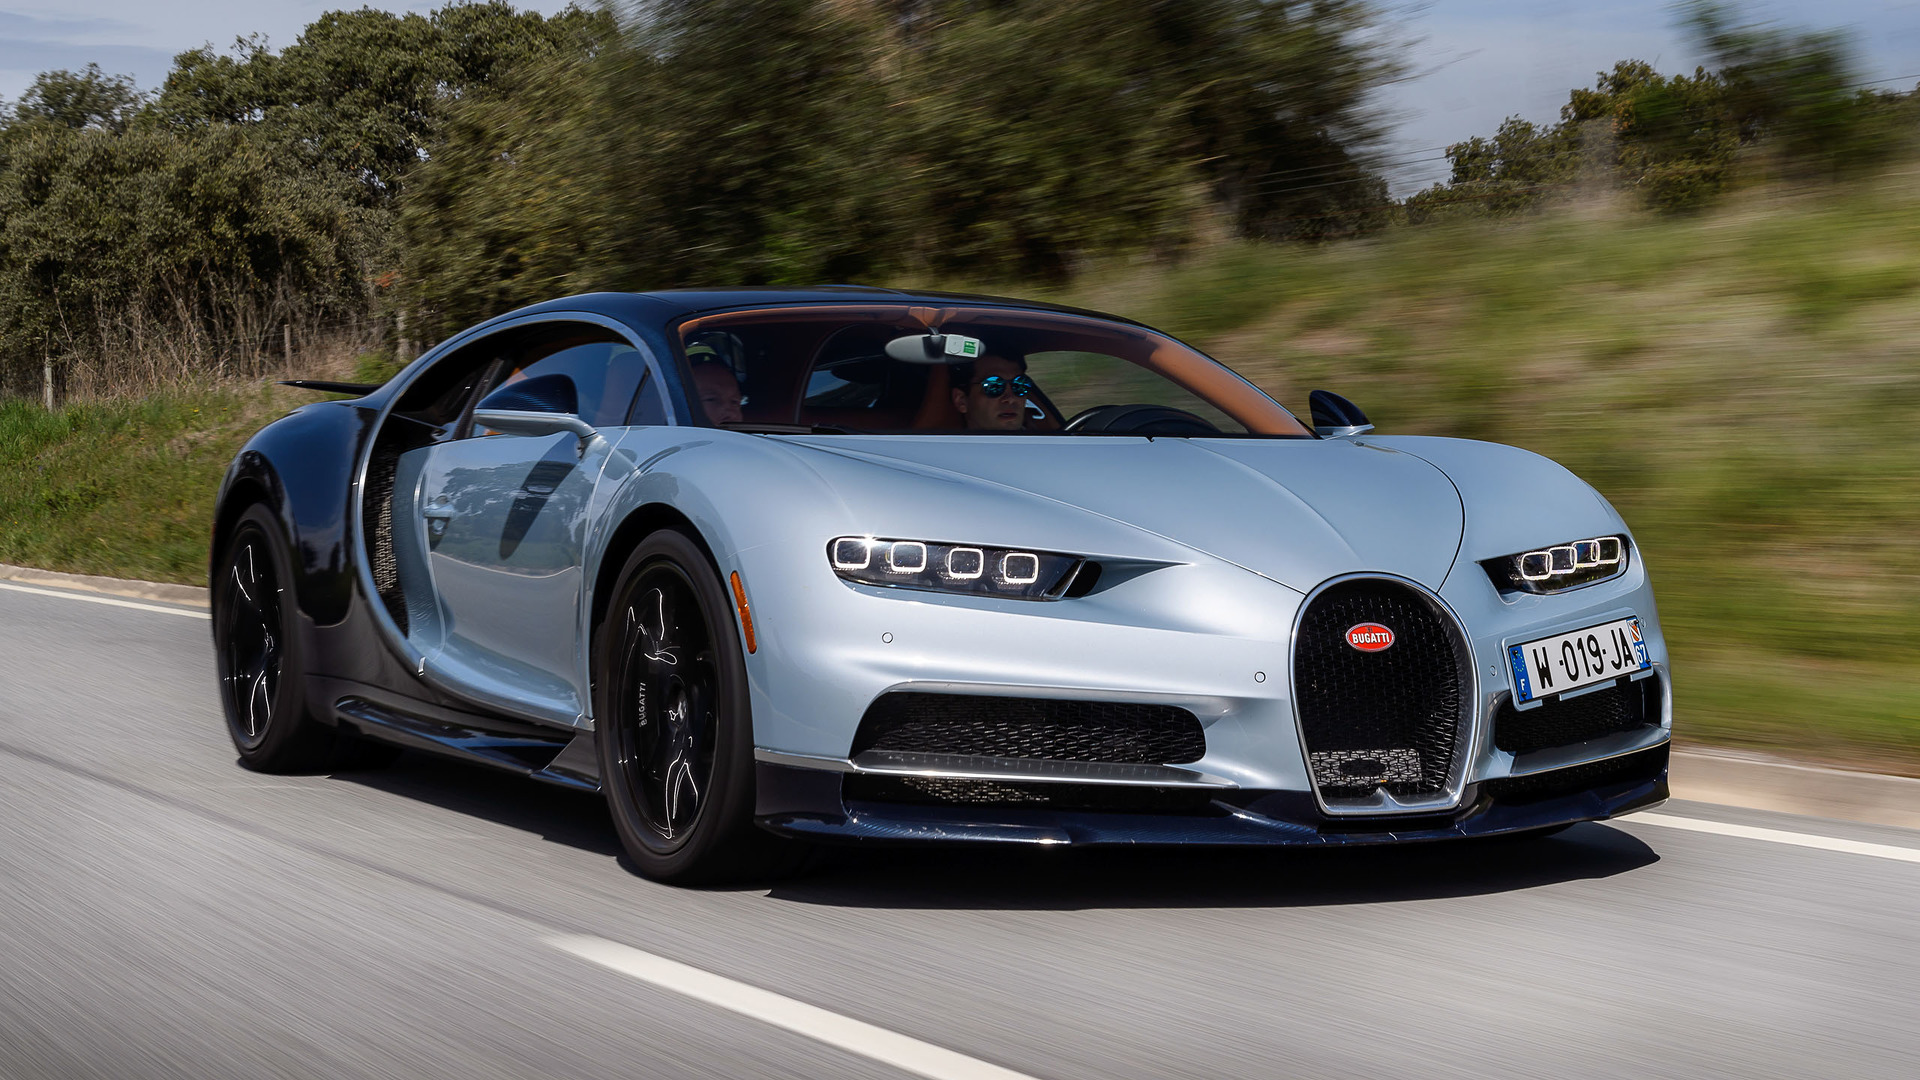 2018 Bugatti Chiron First Drive Record Wrecker